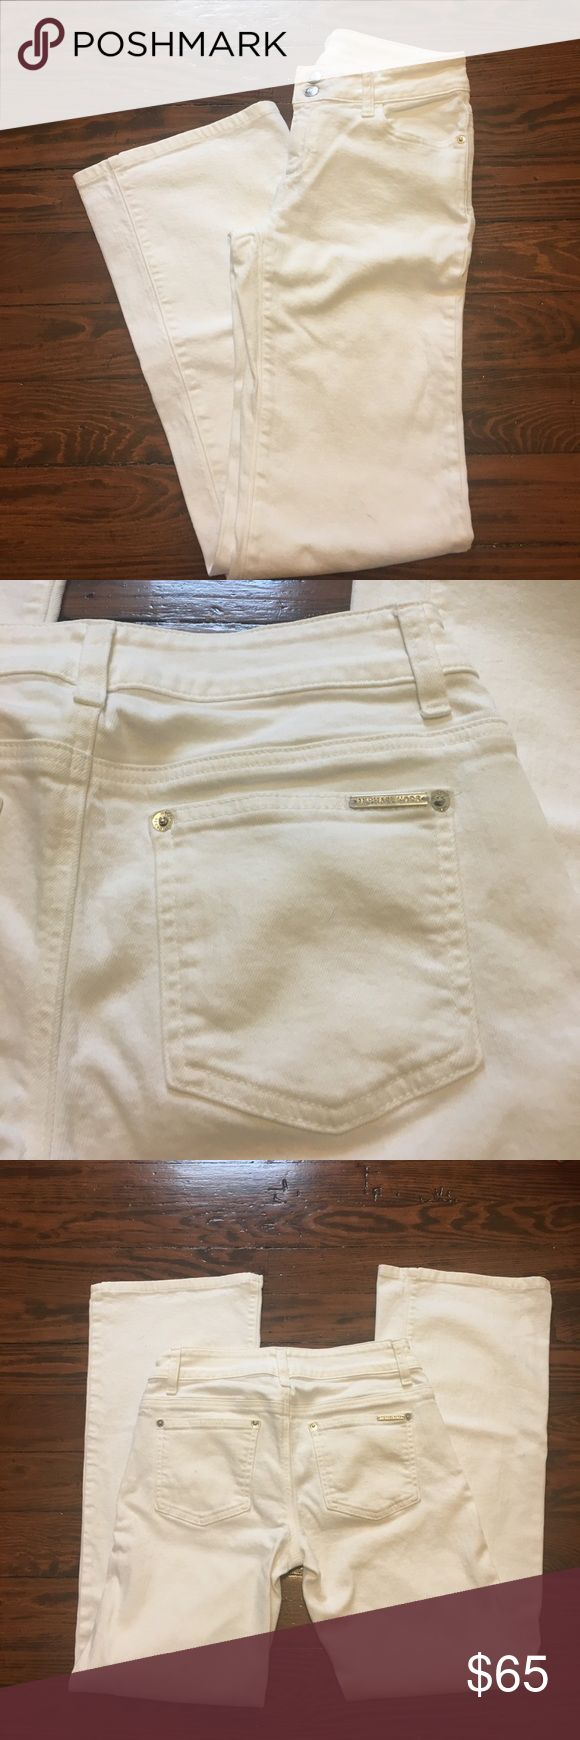 Michael Kors white bootcut jeans Just in time for summer, beautiful white bootcut jeans by Michael Kors!  Front zip closure, back & front pockets. Silver toned details. Michael Kors Jeans Boot Cut